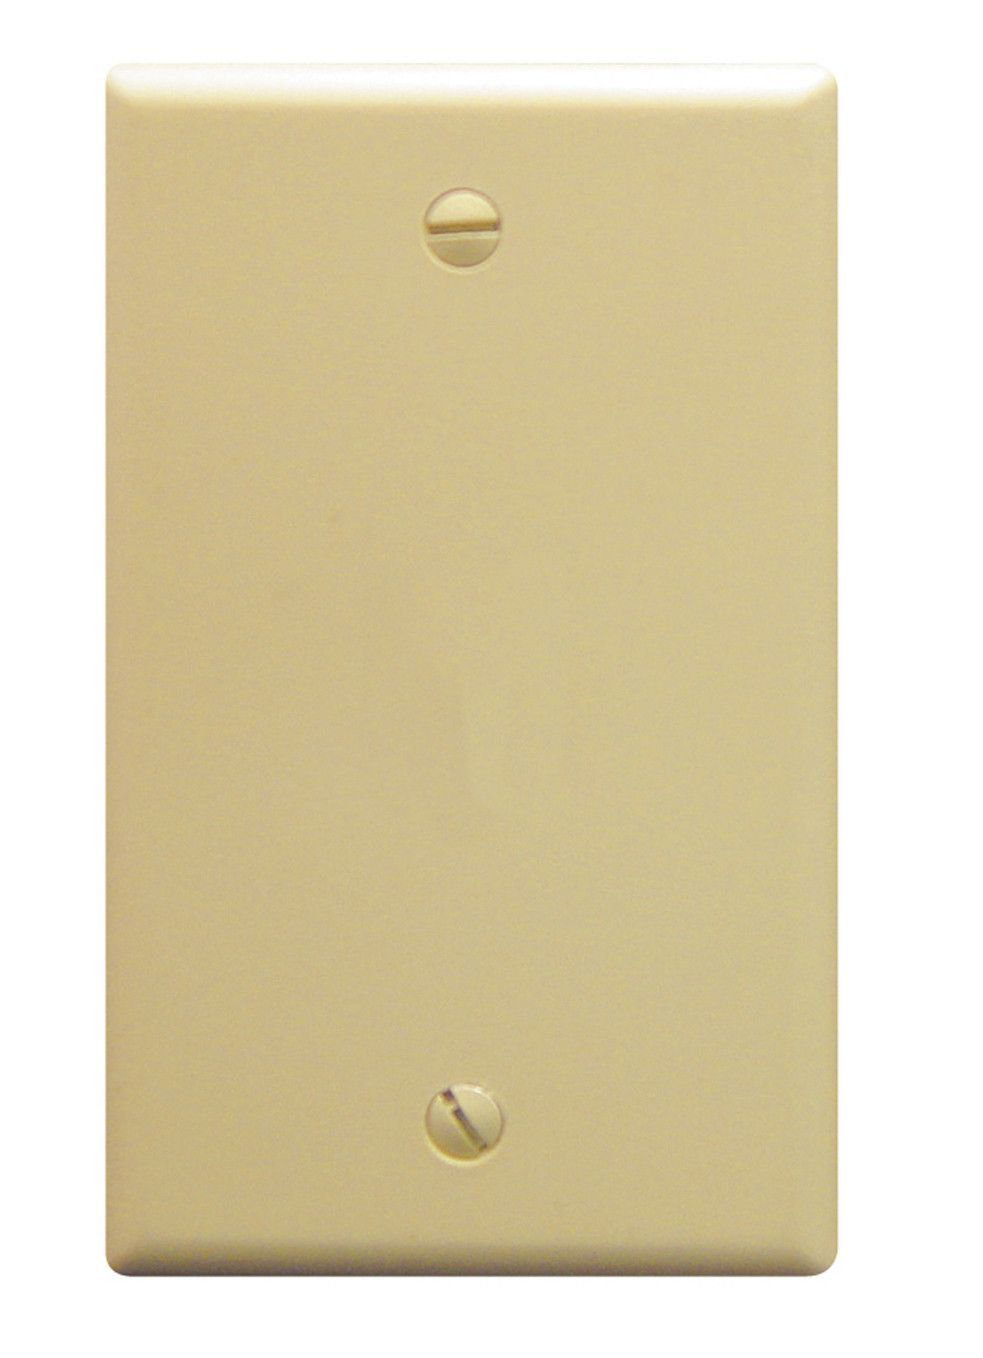 Flush Wall Plate Blank IVORY - ICC-IC630EB0IV - by ICC | Products ...